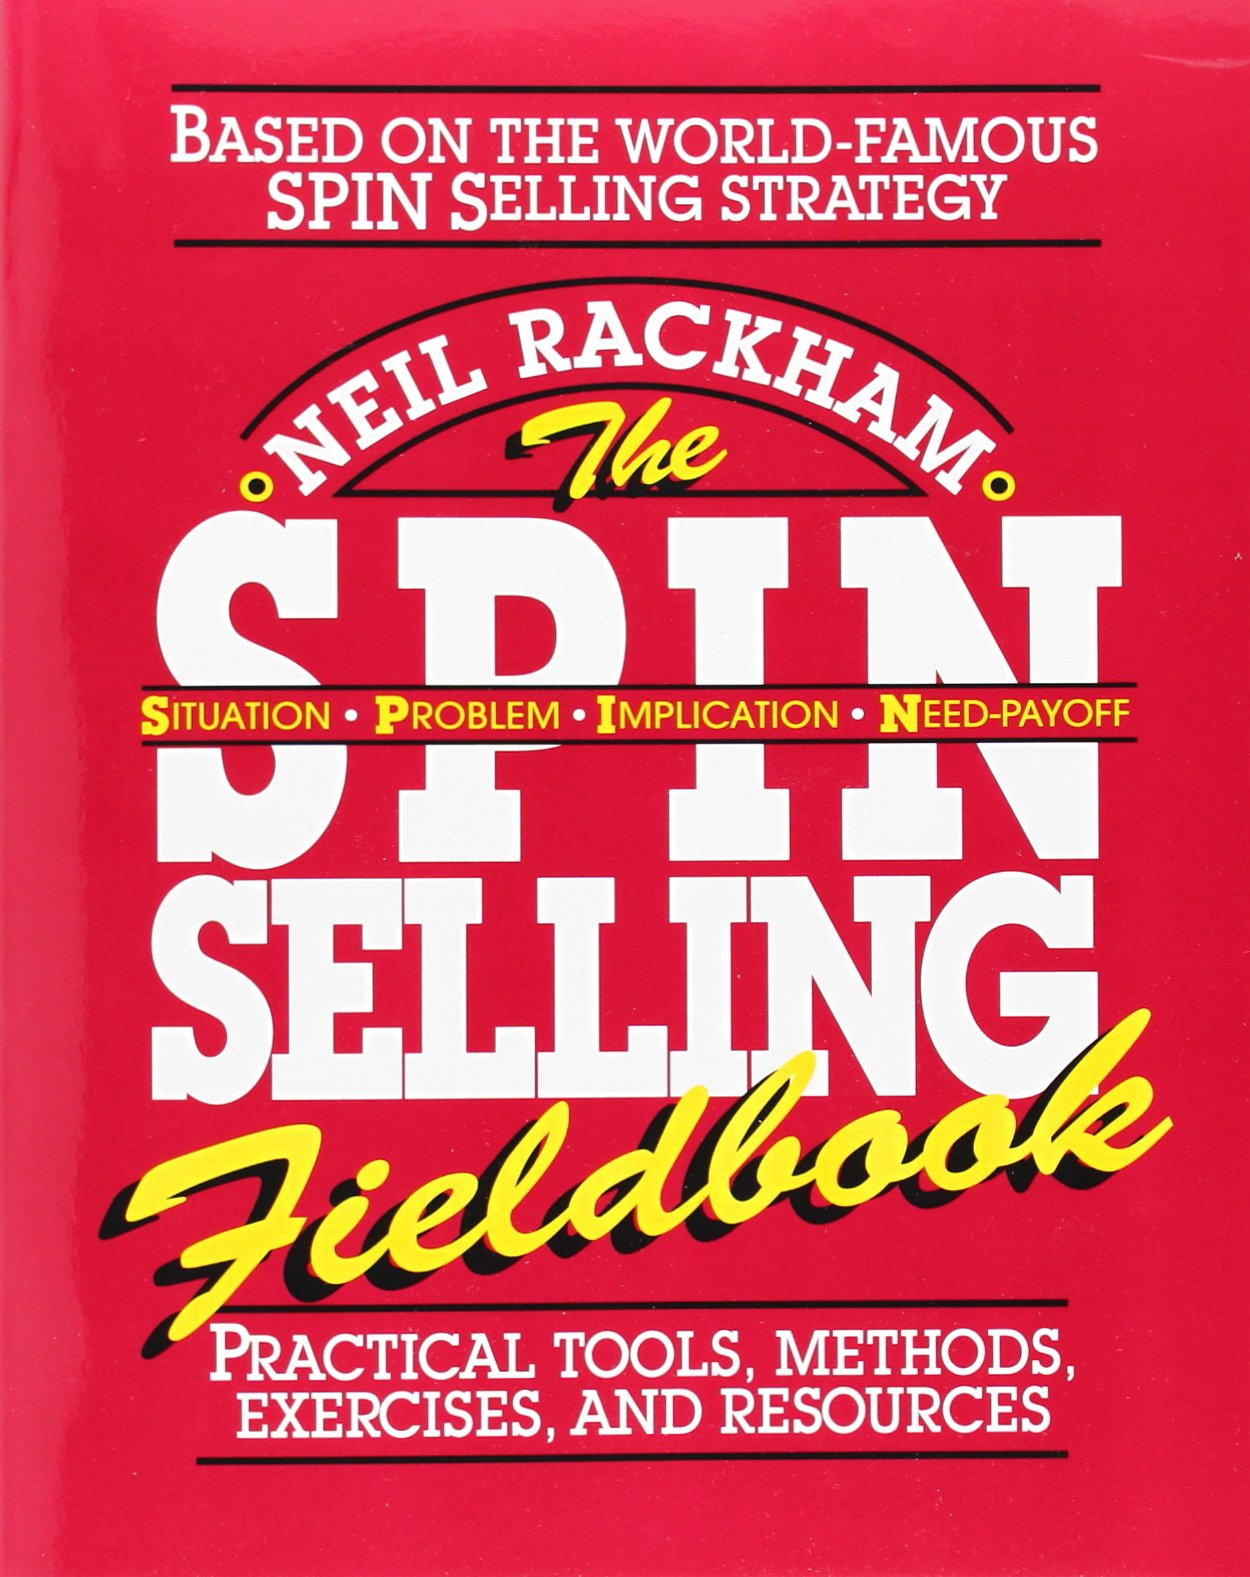 The SPIN Selling Fieldbook: Practical Tools, Methods, Exercises and Resources ISBN-13 9780070522350